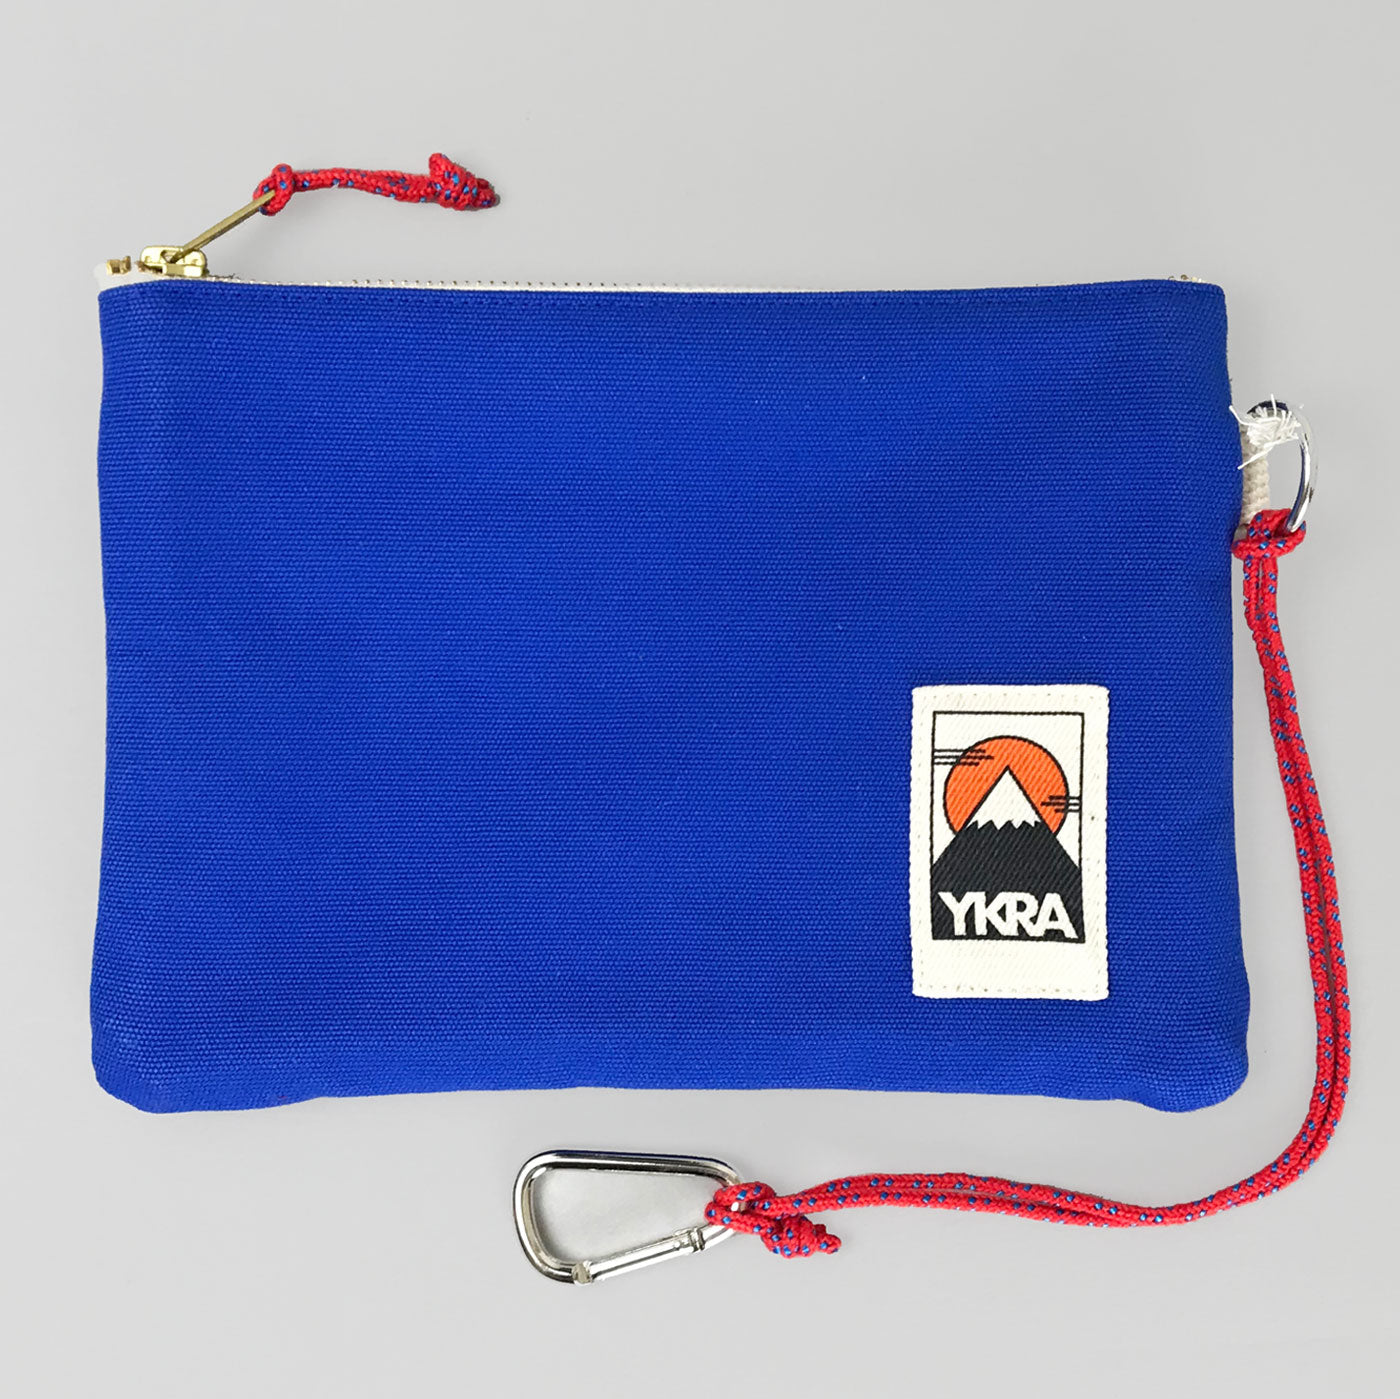 YKRA Pouch - Blue - Colours May Vary